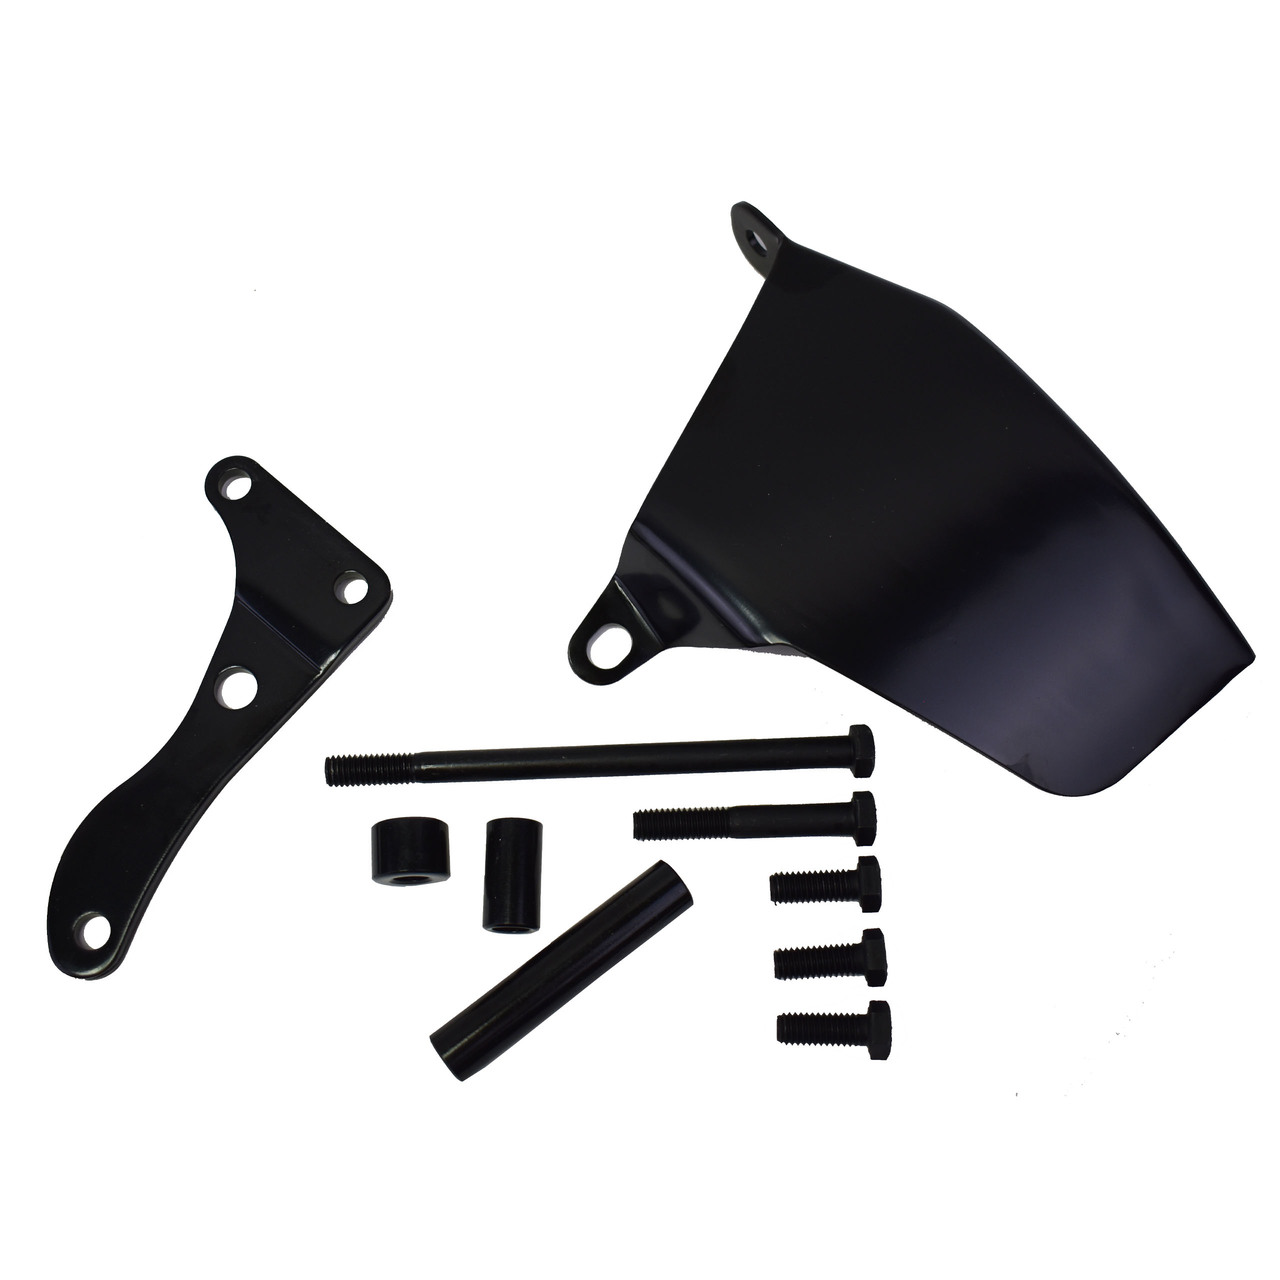 A-Team Performance 1969-1975 Alternator Steel Bracket Long Water Pump Compatible with SBC Small Block Chevy 262 283 350 400 BLACK